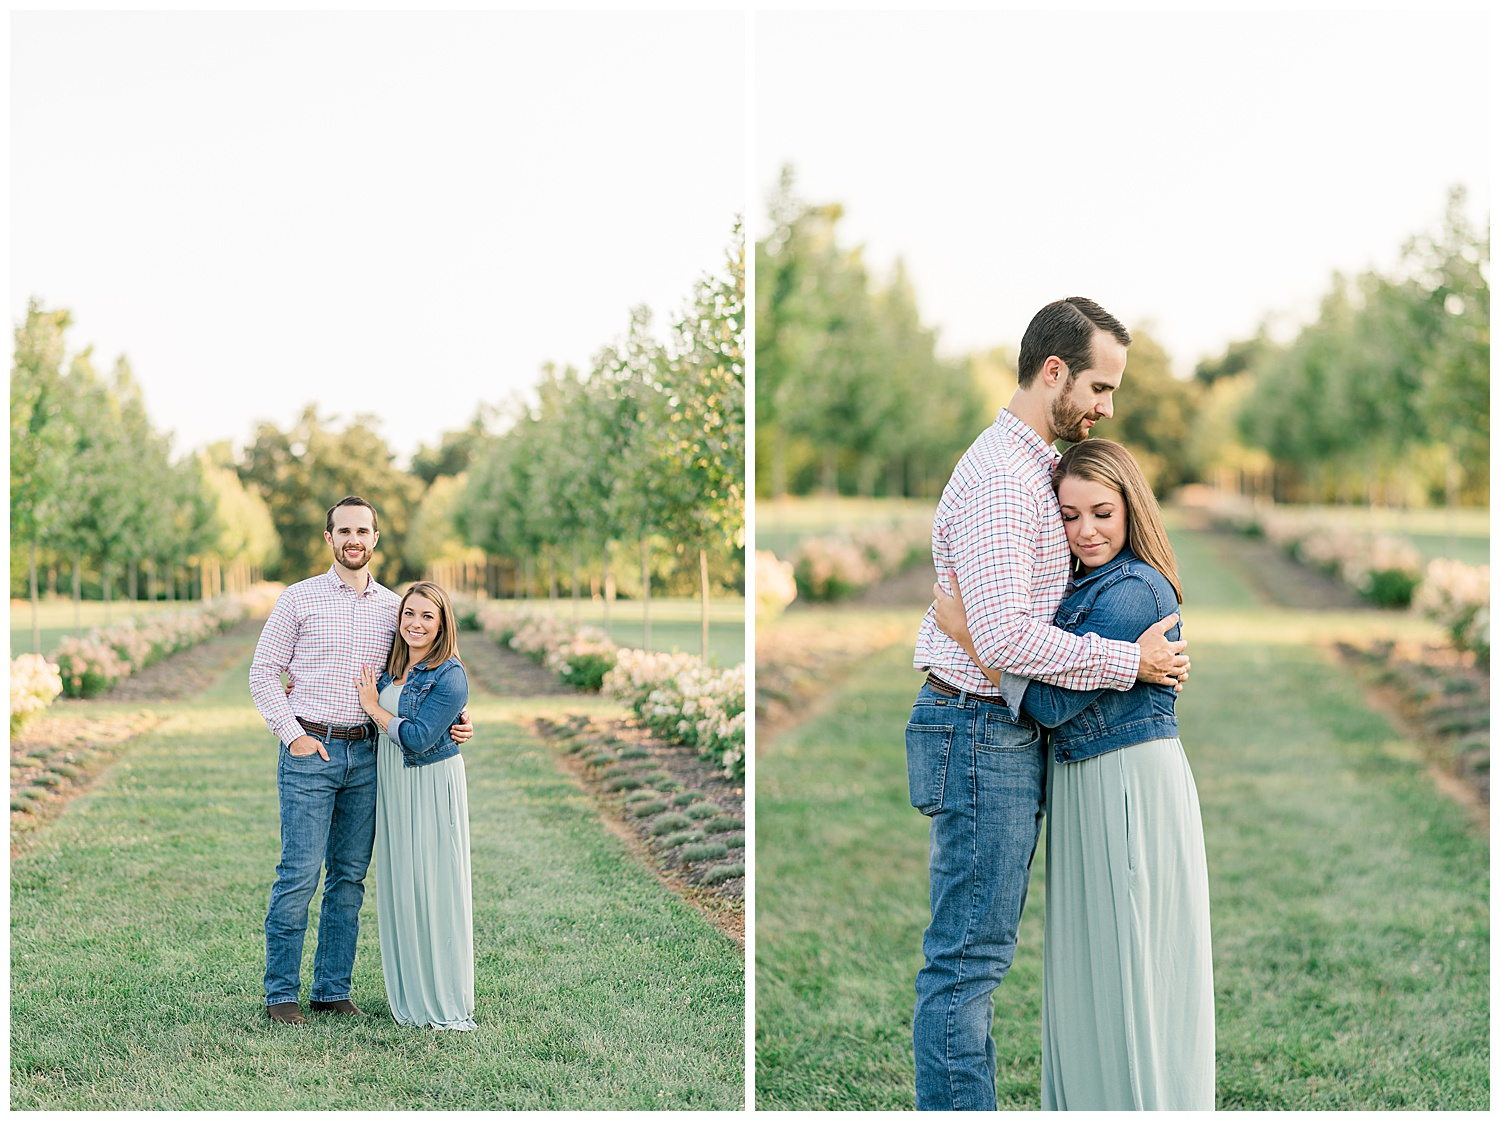 Cox_Arboretum_Anniversary_Session_Miamisburg_Ohio_Cassandra_Janina_Photography_Ohio_Wedding_Photographer_0260.jpg